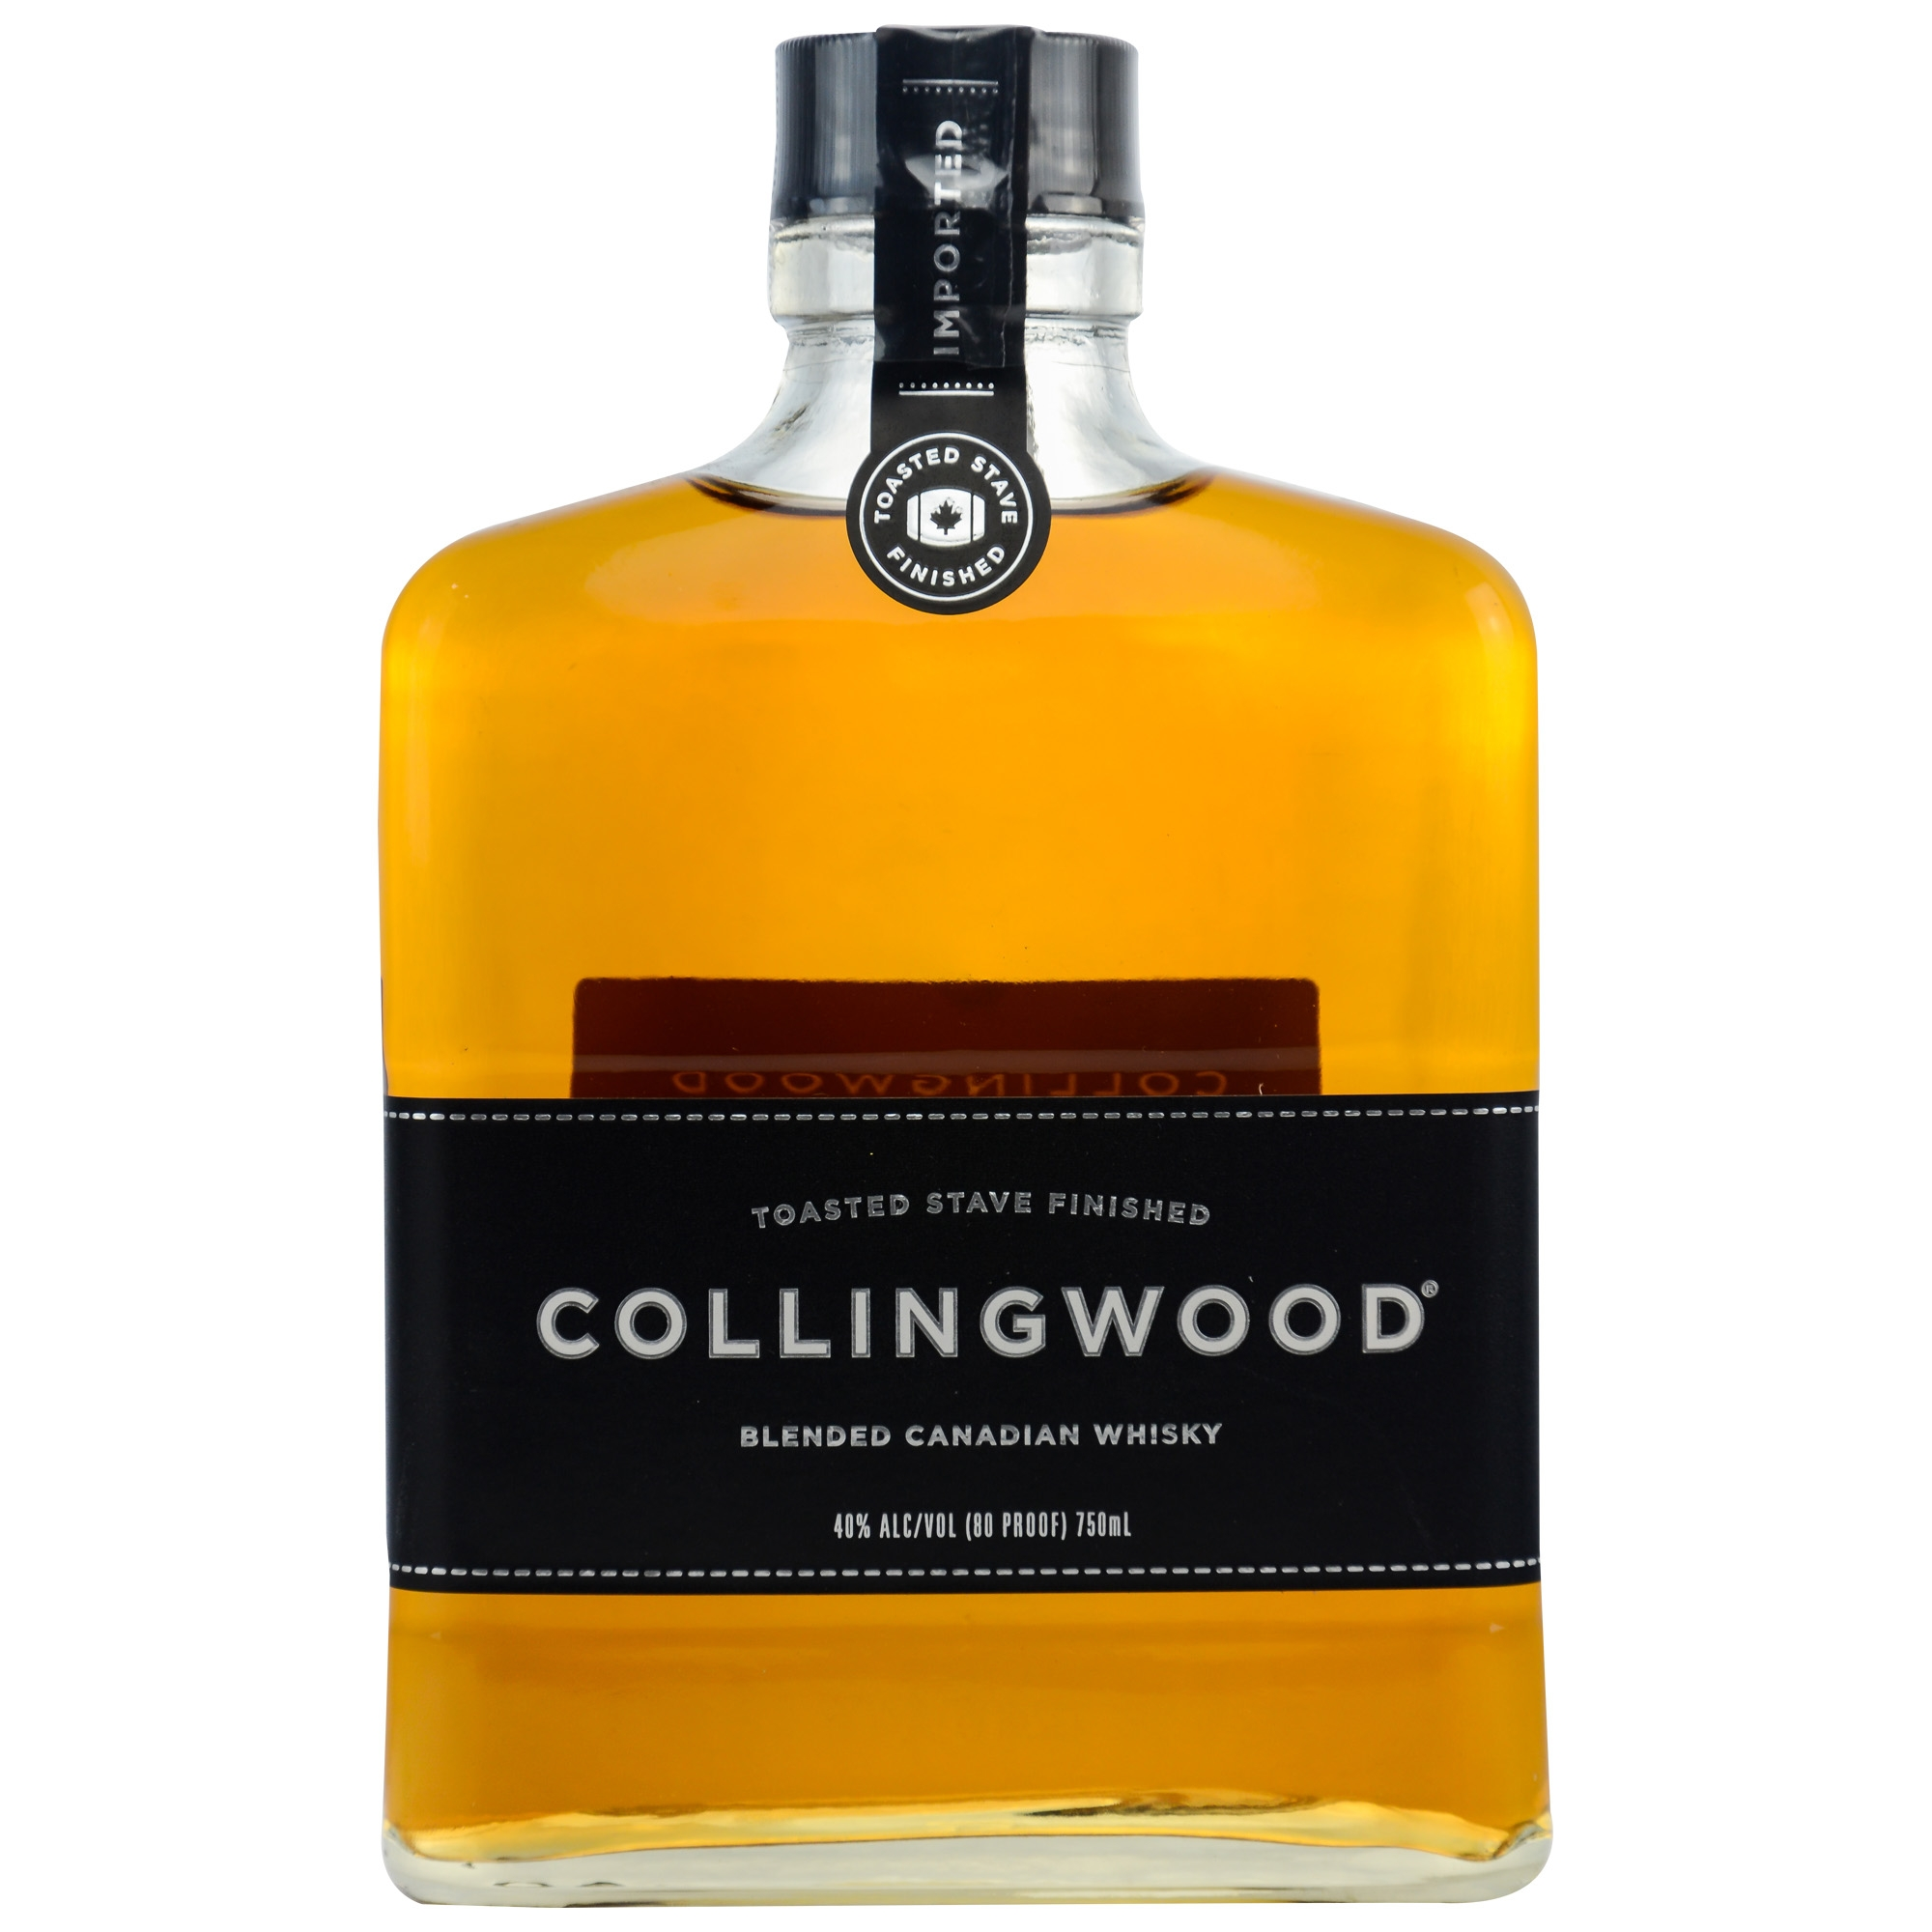 Collingwood Canadian Whisky hier kaufen! | whic.de